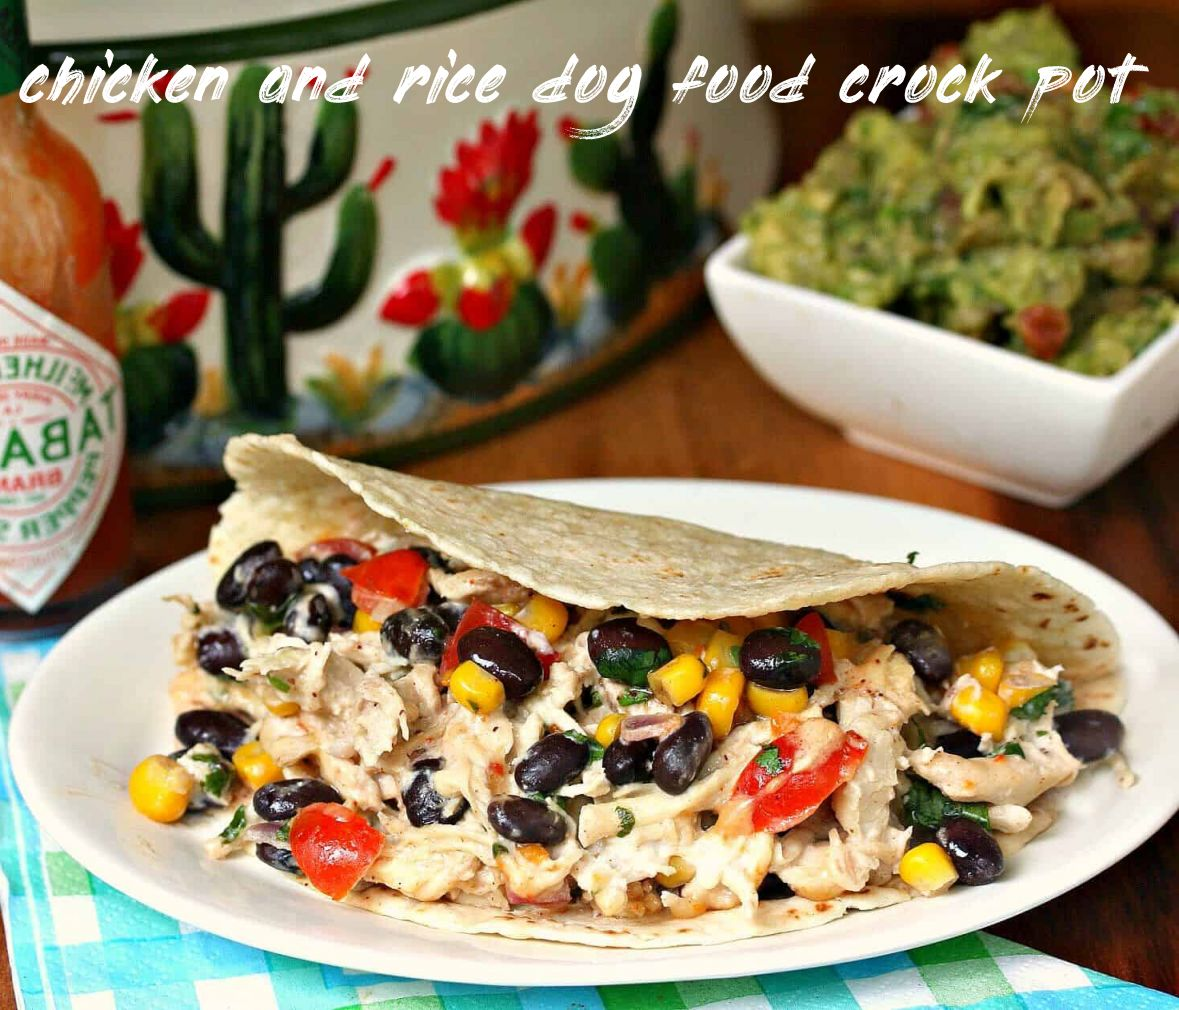 Things you should know about chicken and rice dog food crock pot